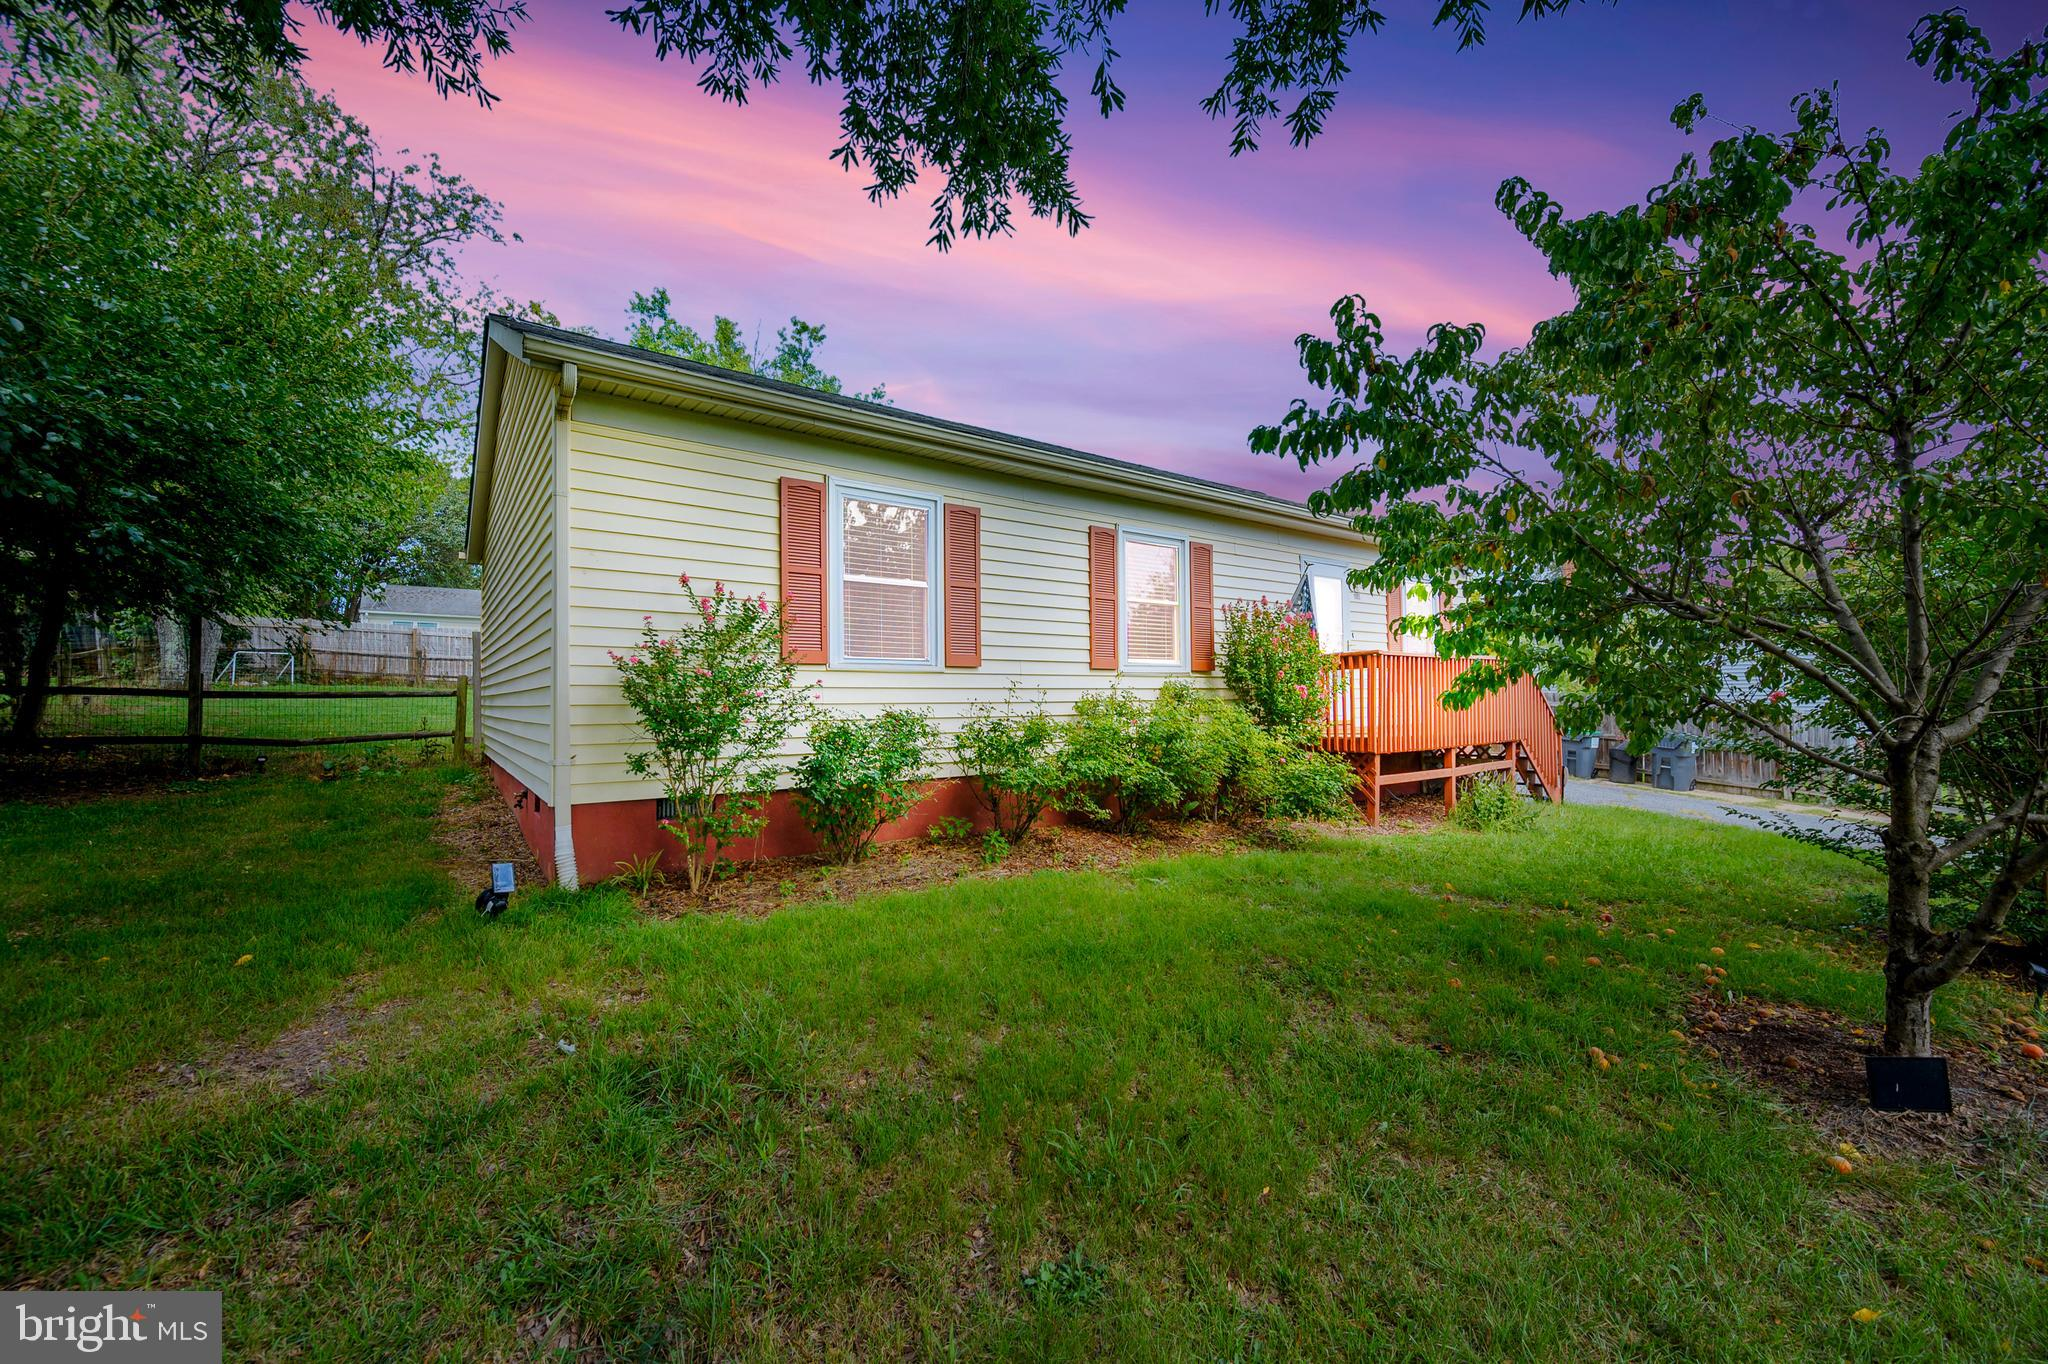 Remodeled rambler in the heart of Fredericksburg. This home has 3 bedrooms and 1.5 baths. Remodeled kitchen with table space. Great large covered porch in the backyard for entertaining. The shed in the back is a perfect bonus area for a man-cave or she-shed with carpet and drywall. Fenced backyard. Owner has sealed the crawl space. Home is move in ready and sold As-Is!